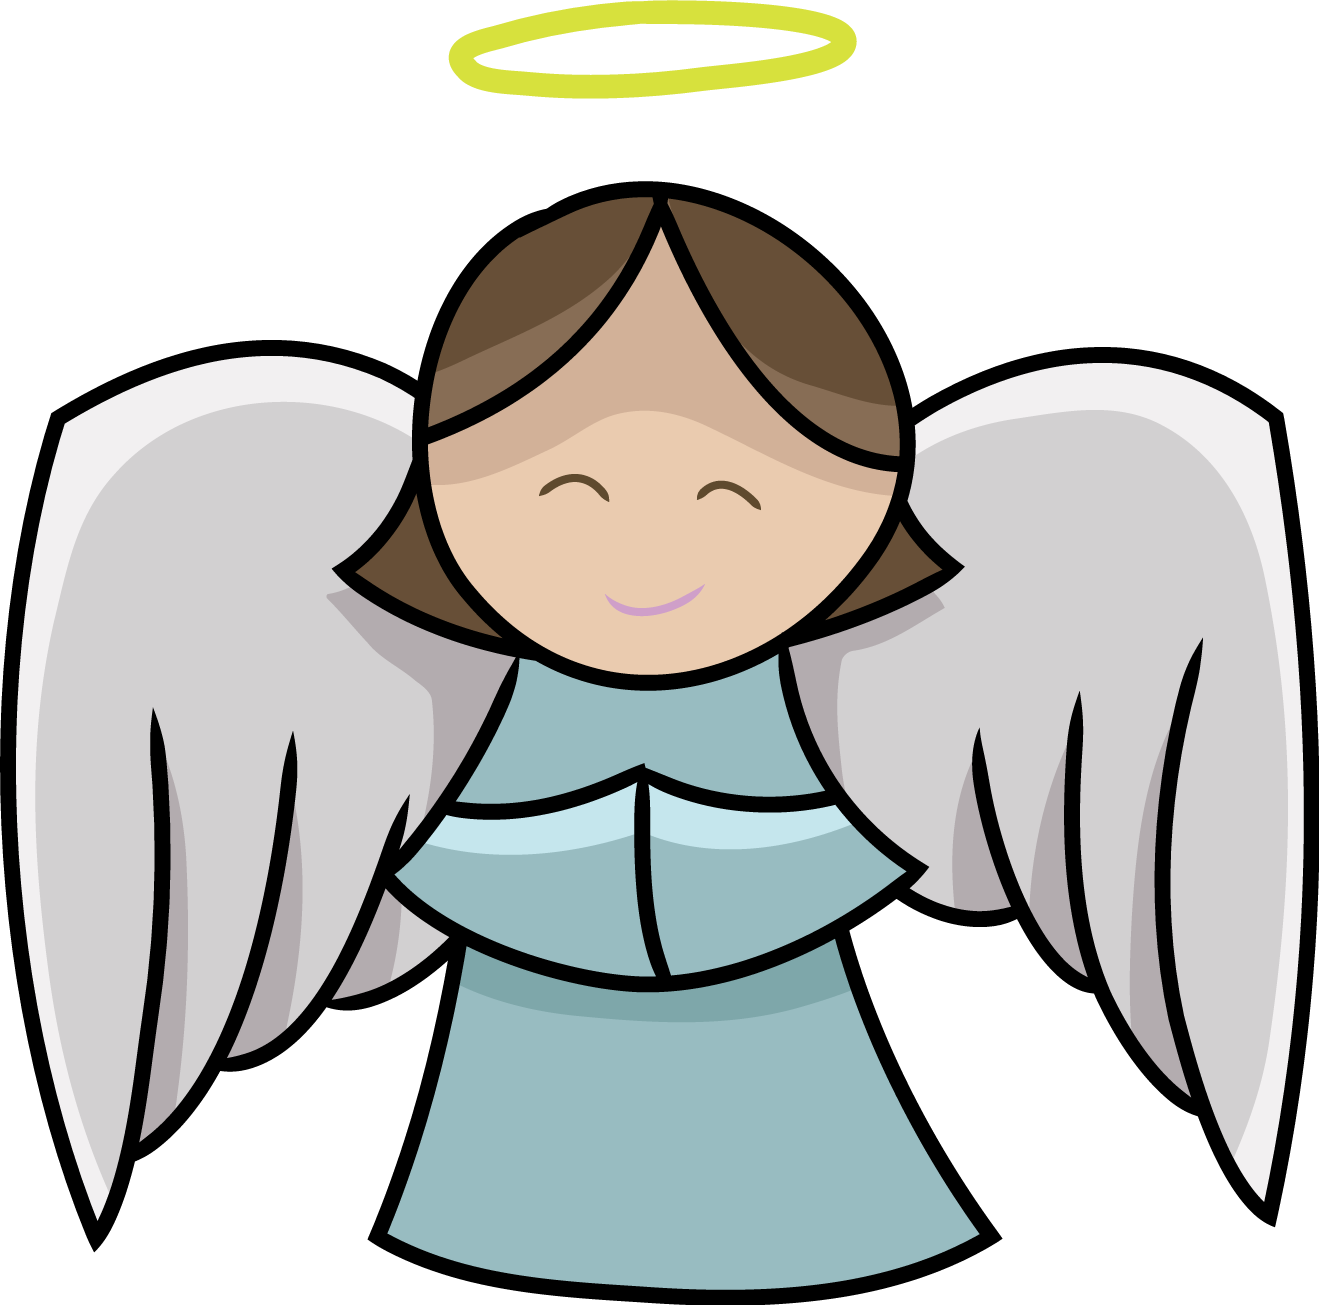 1319x1305 Angel Free To Use Clipart